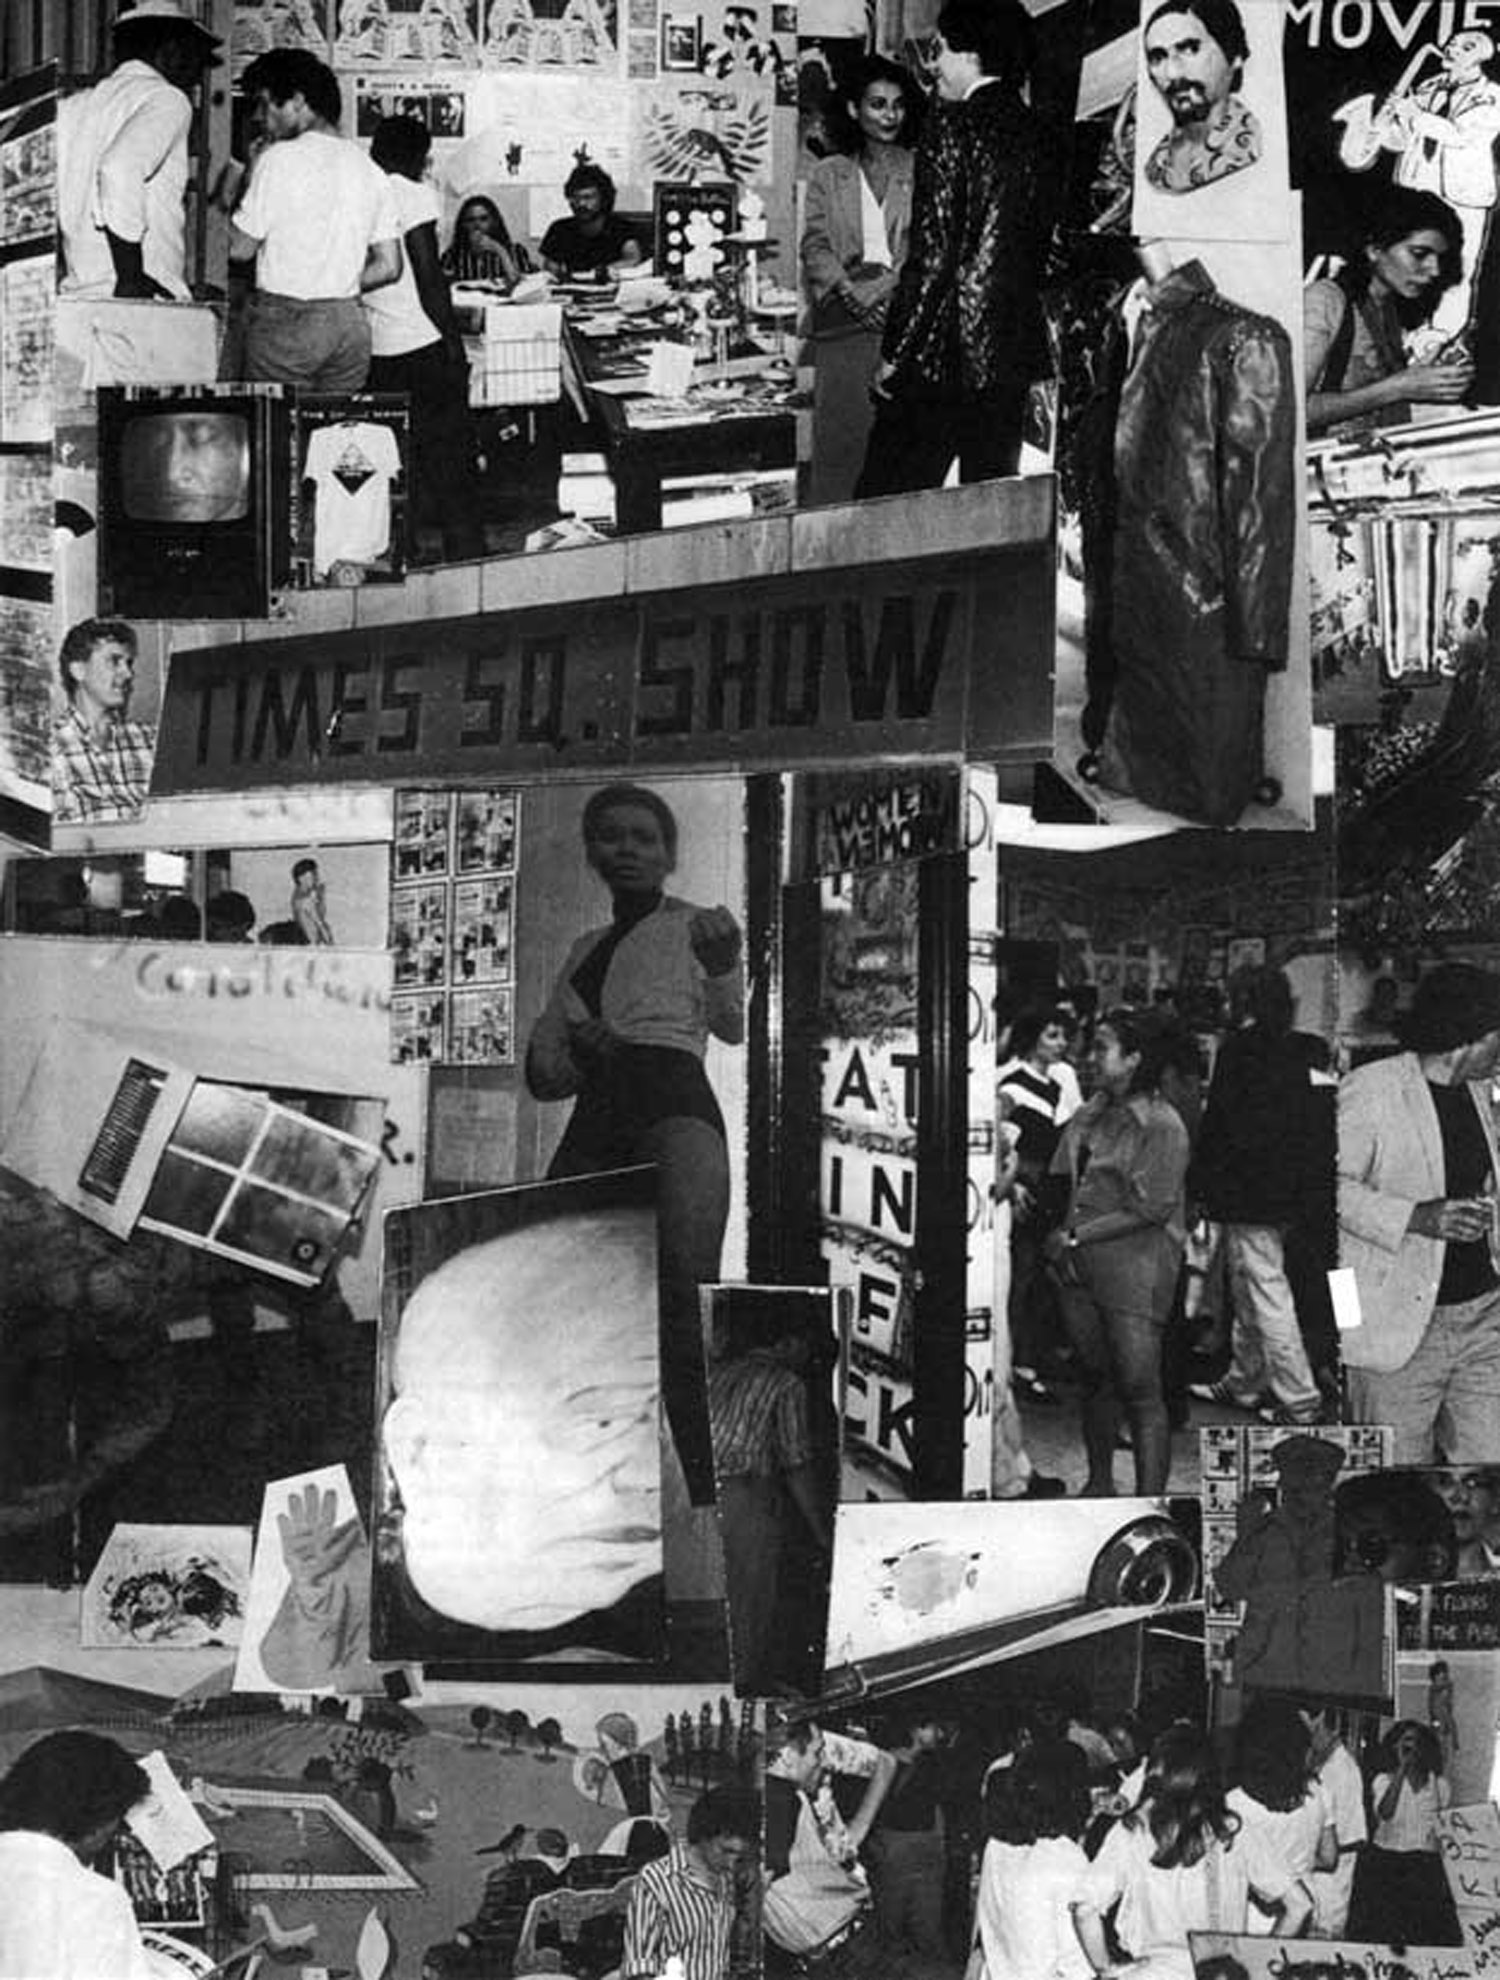 Views of the Time Square Show (organized by Colab), 1980. Photo collage by Terise Slotkin